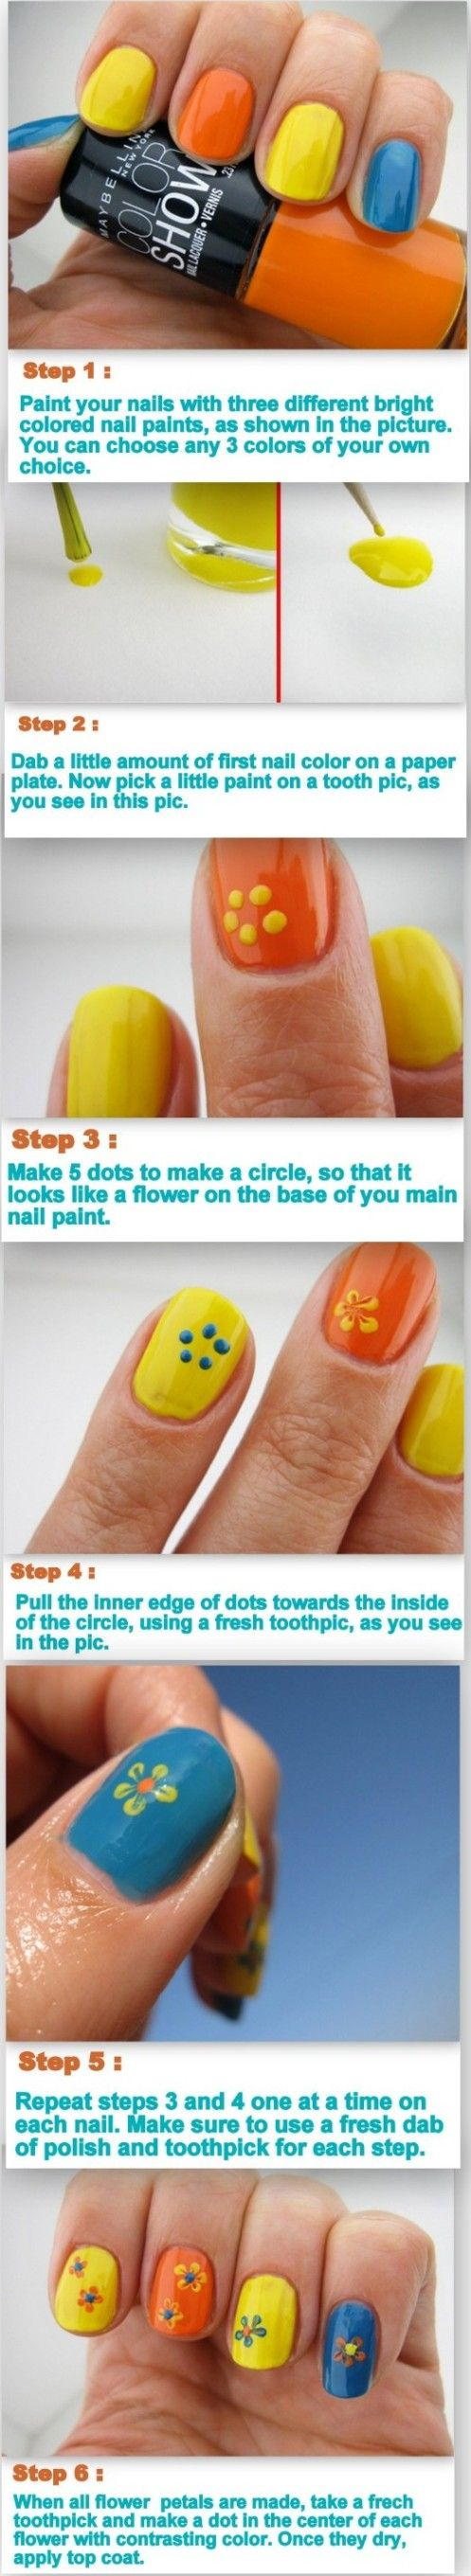 55 best Nail Art Tutorials images on Pinterest | Nail scissors, Nail ...